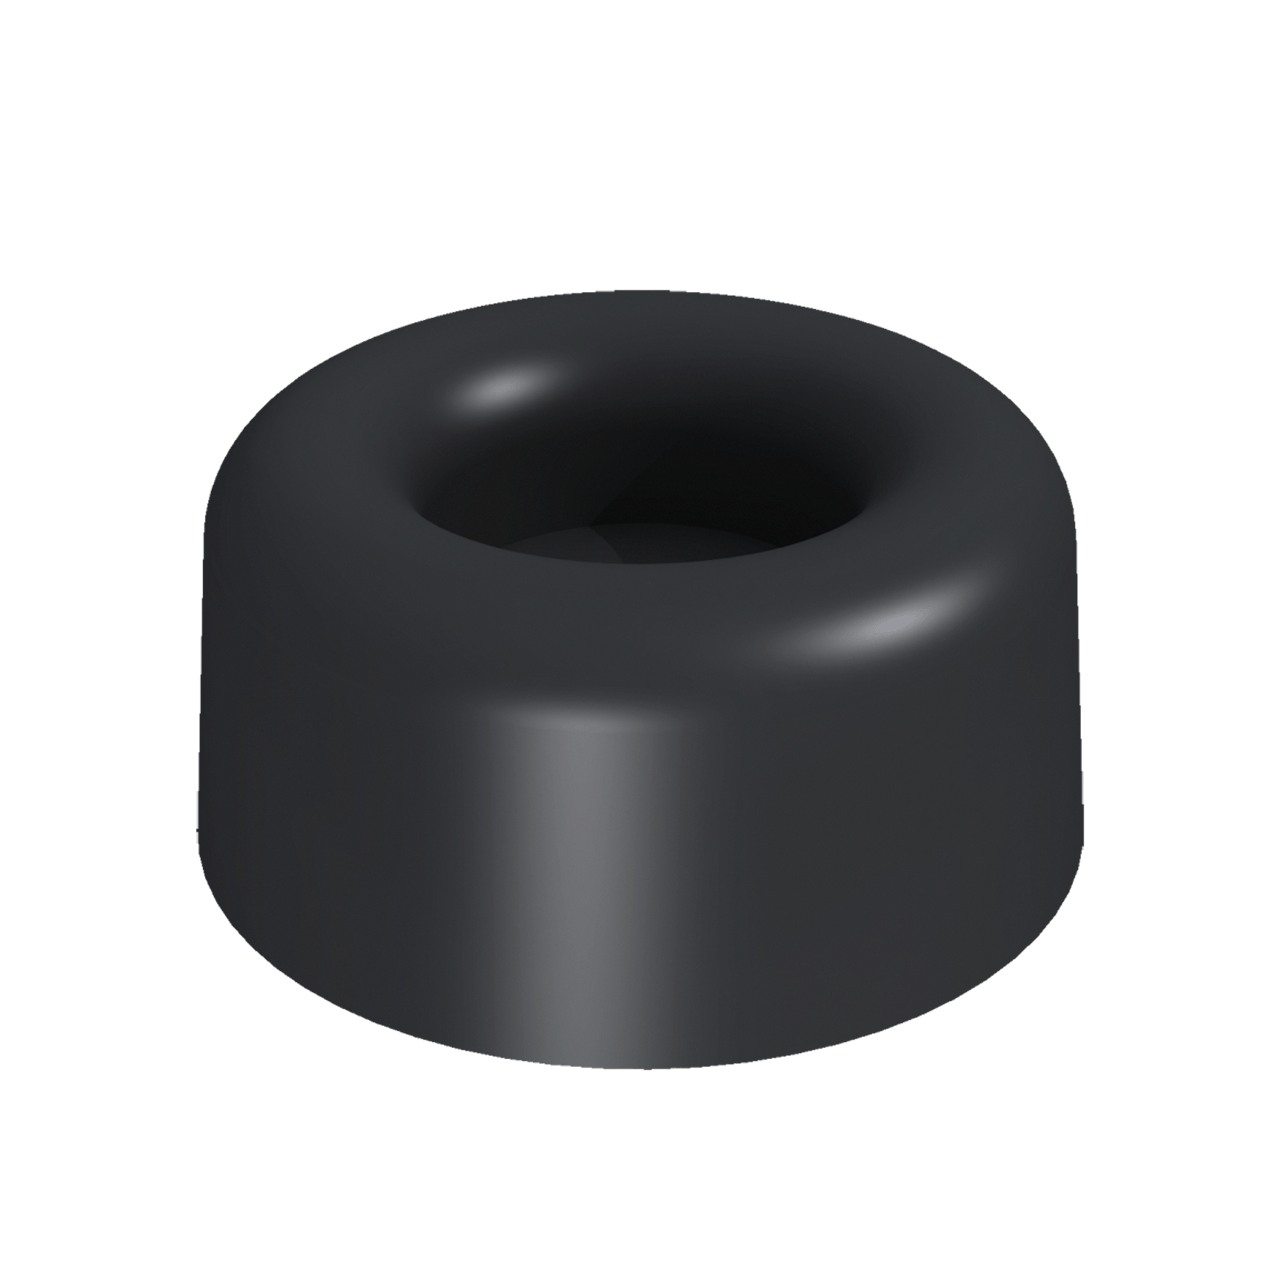 Round Rubber Foot, 3/4 view